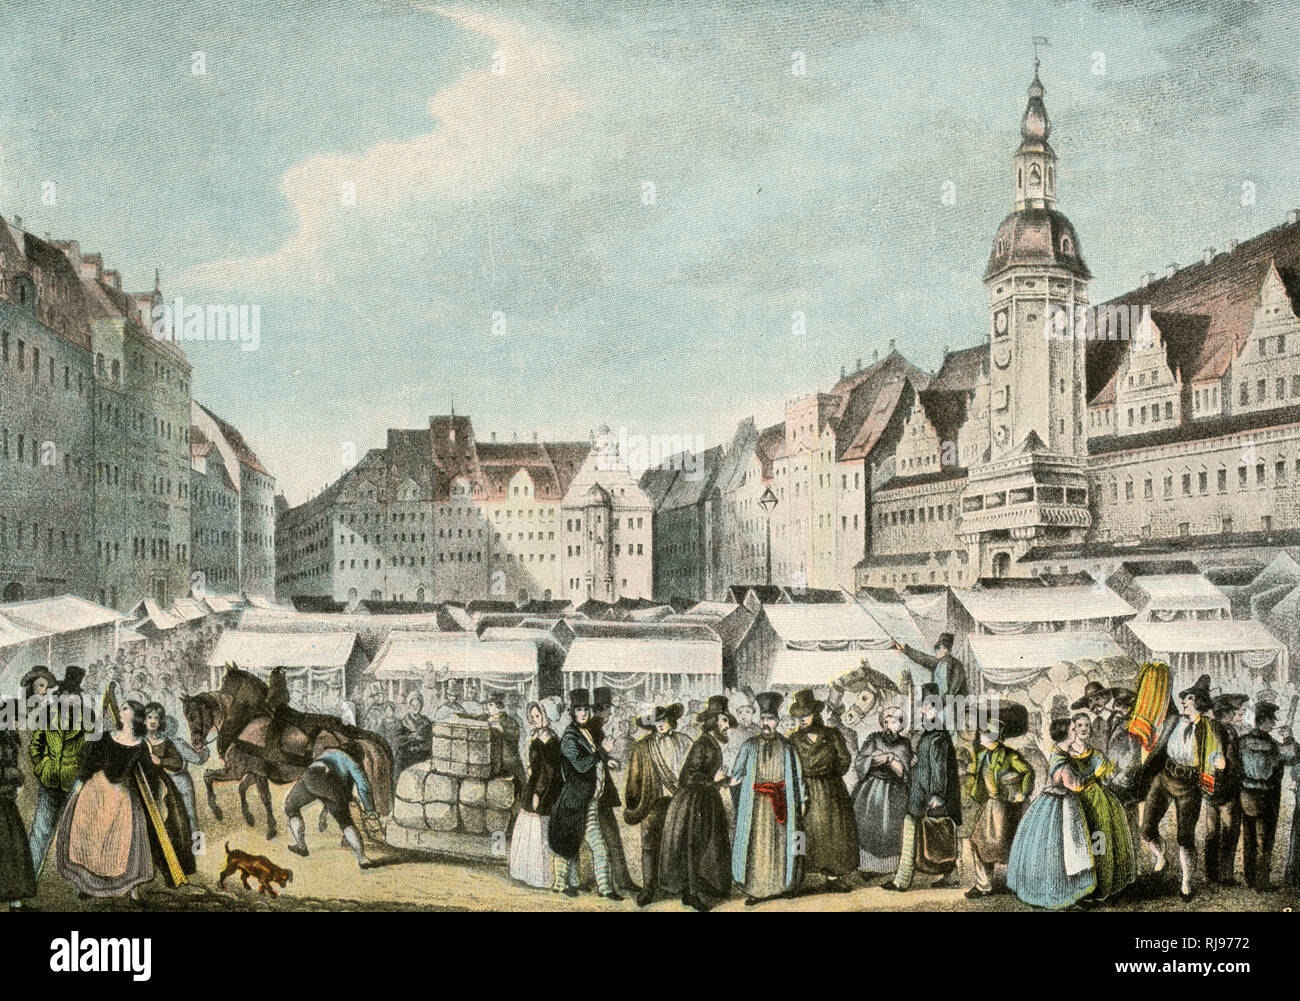 A busy scene at Leipzig fair as people mill around the stalls. Stock Photo